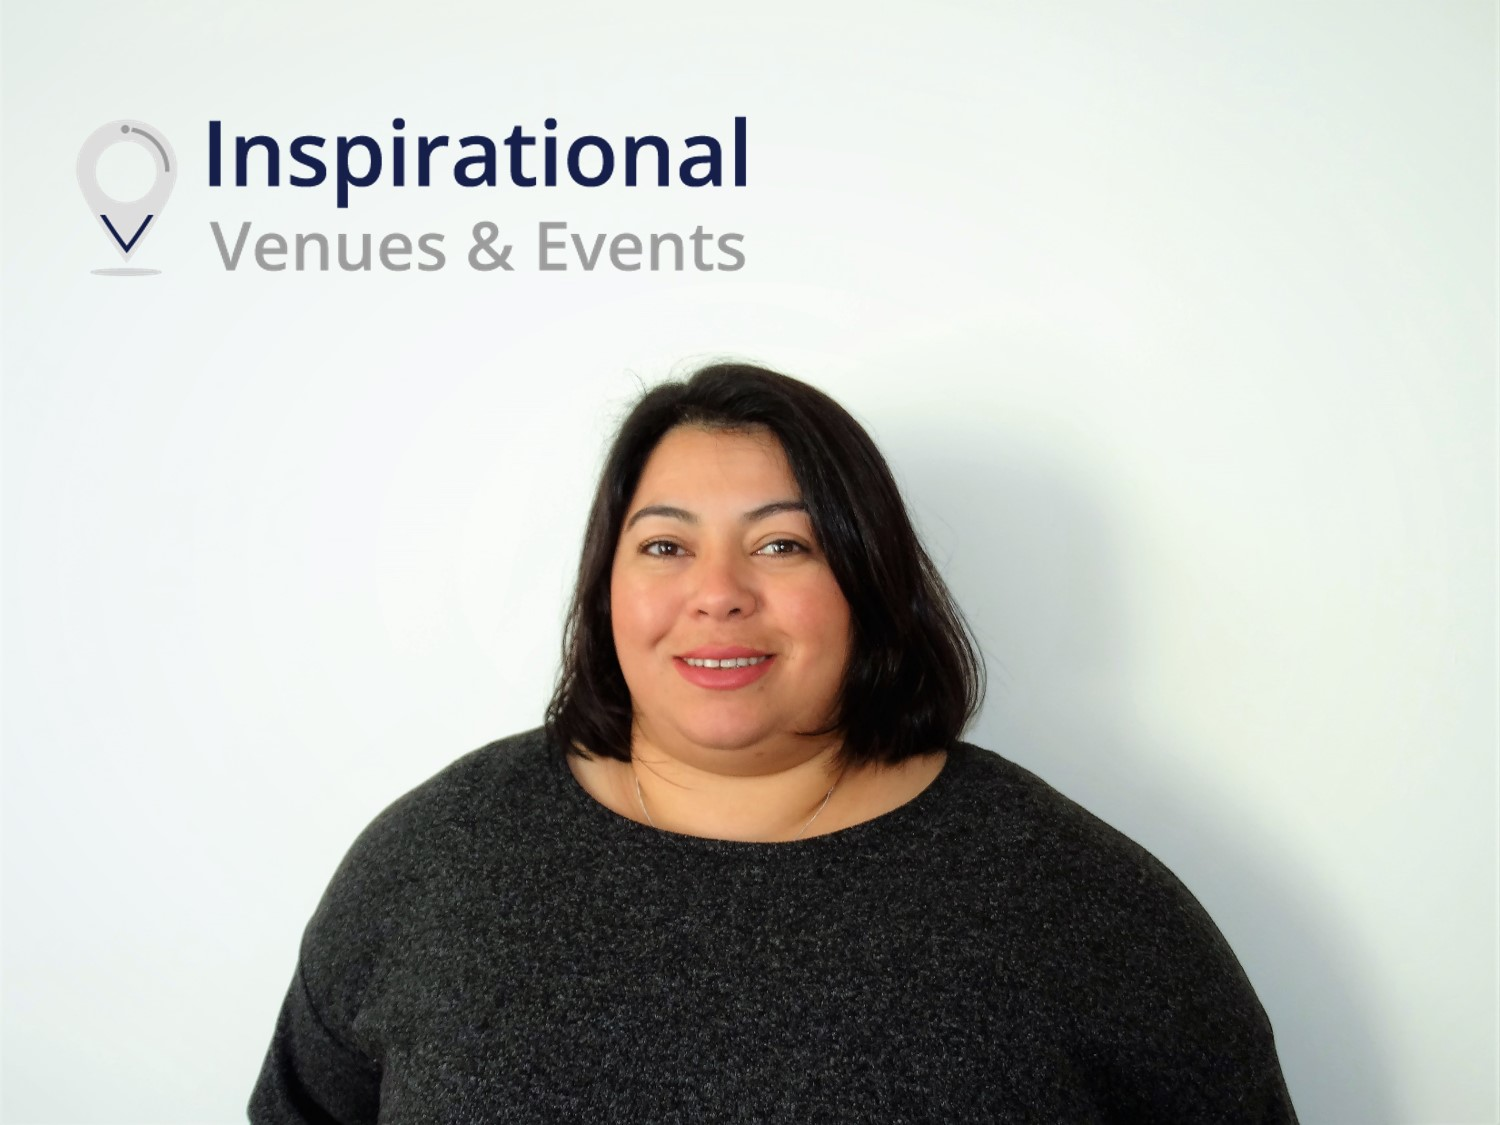 Amina Benamoune joins Inspirational Venues from Grass Roots as Operations Director